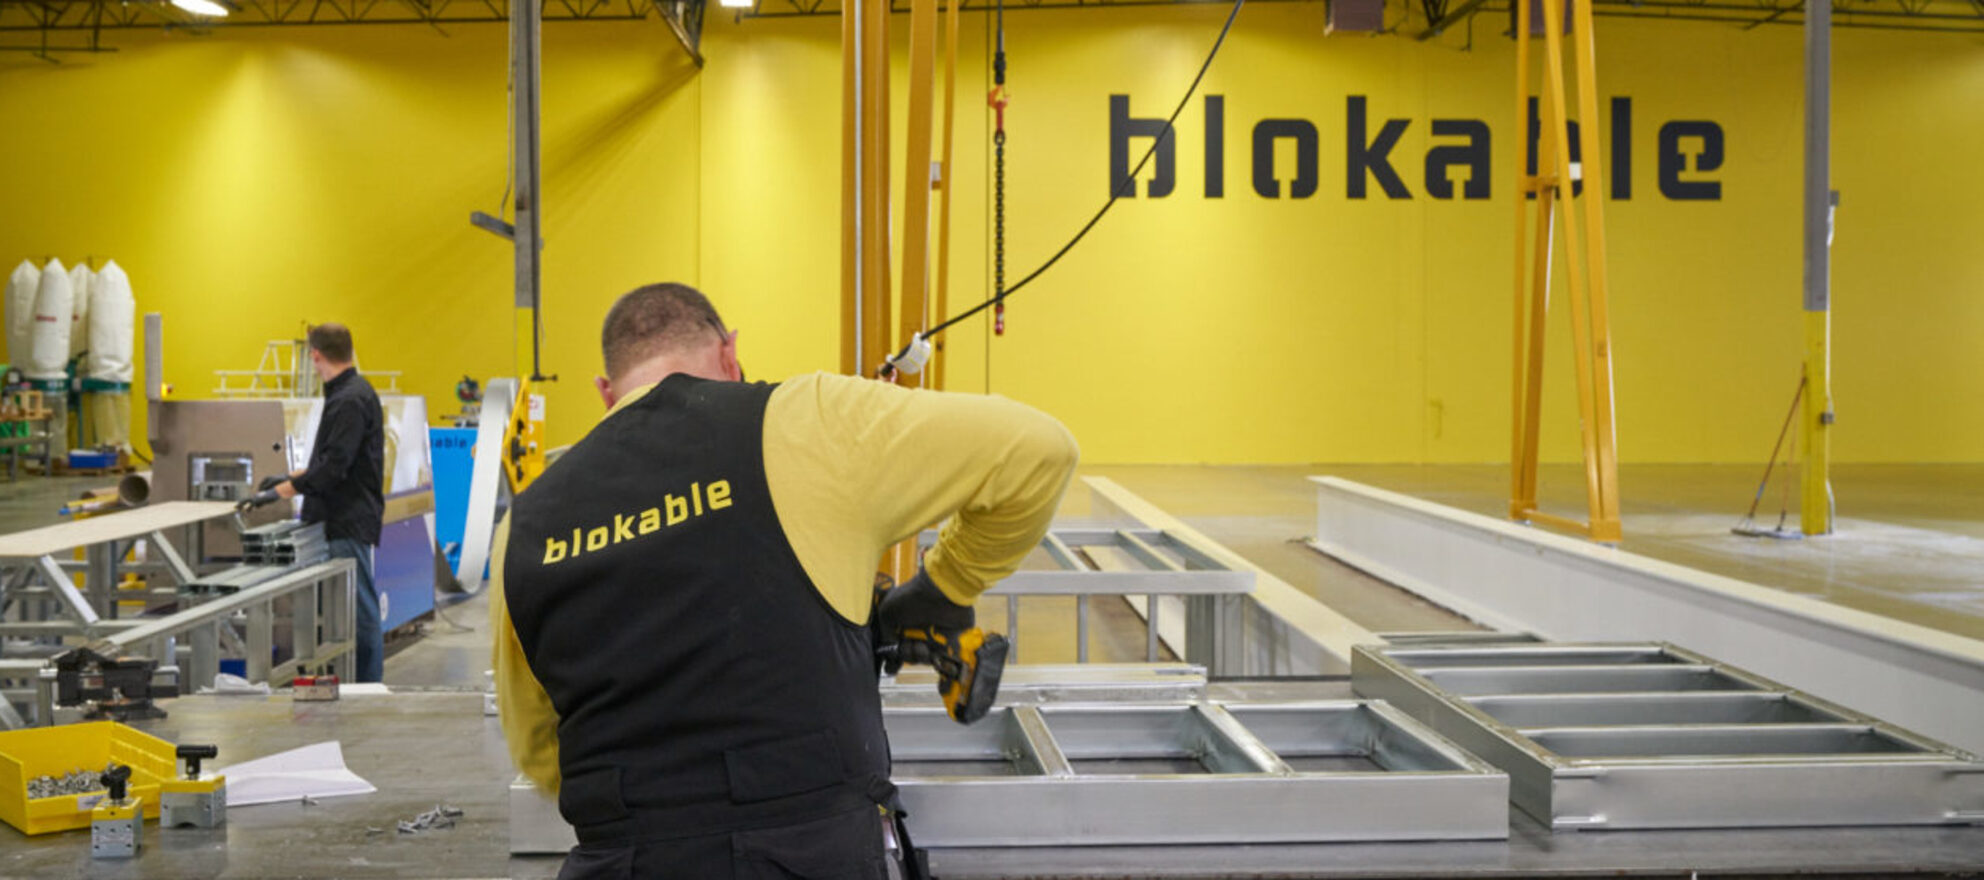 Smart home startup Blokable raises $23M in Series A round